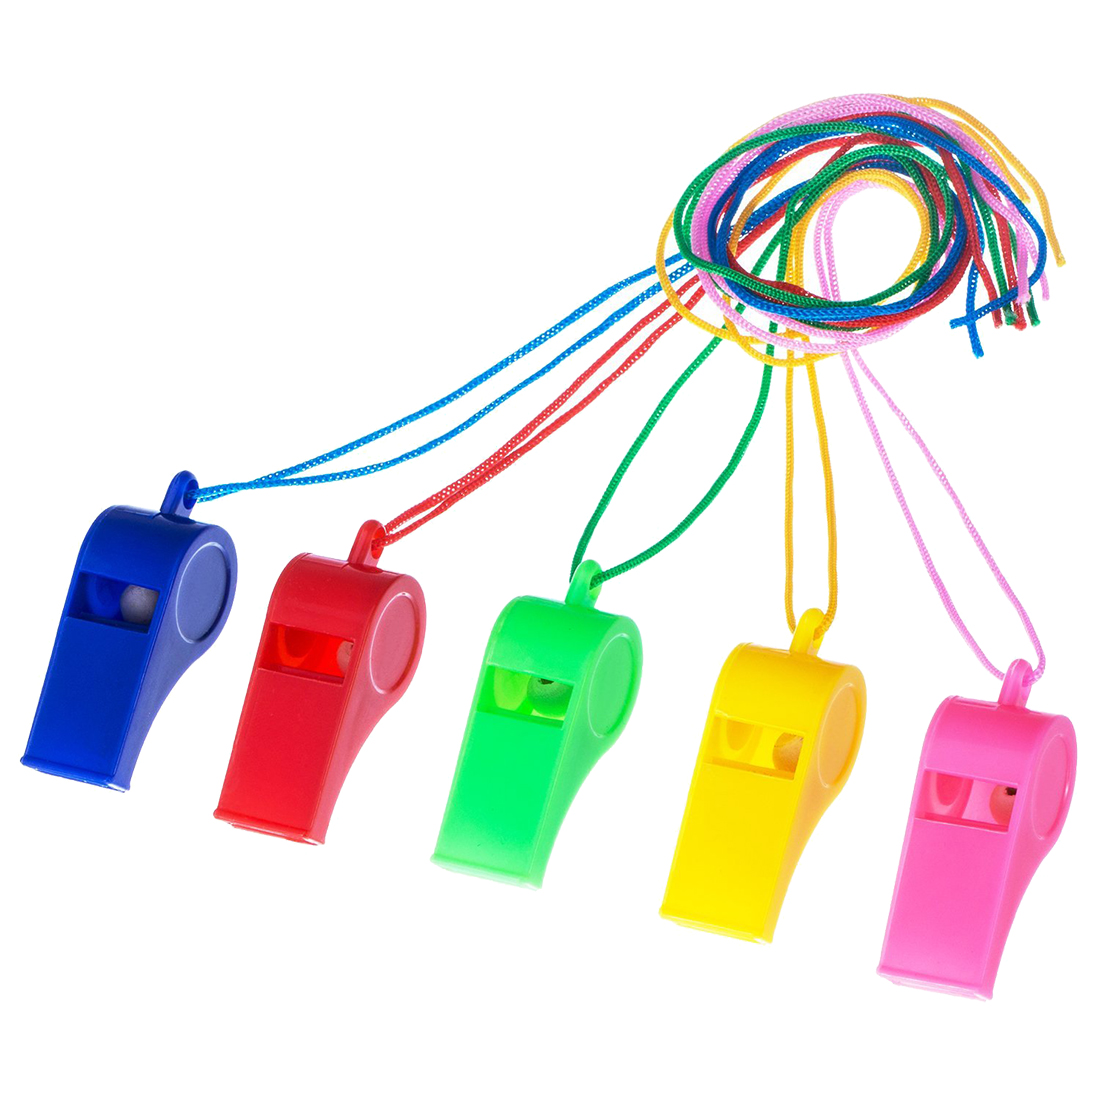 40 Pieces Plastic Whistles With Lanyards For Party Sports, 5 Colors